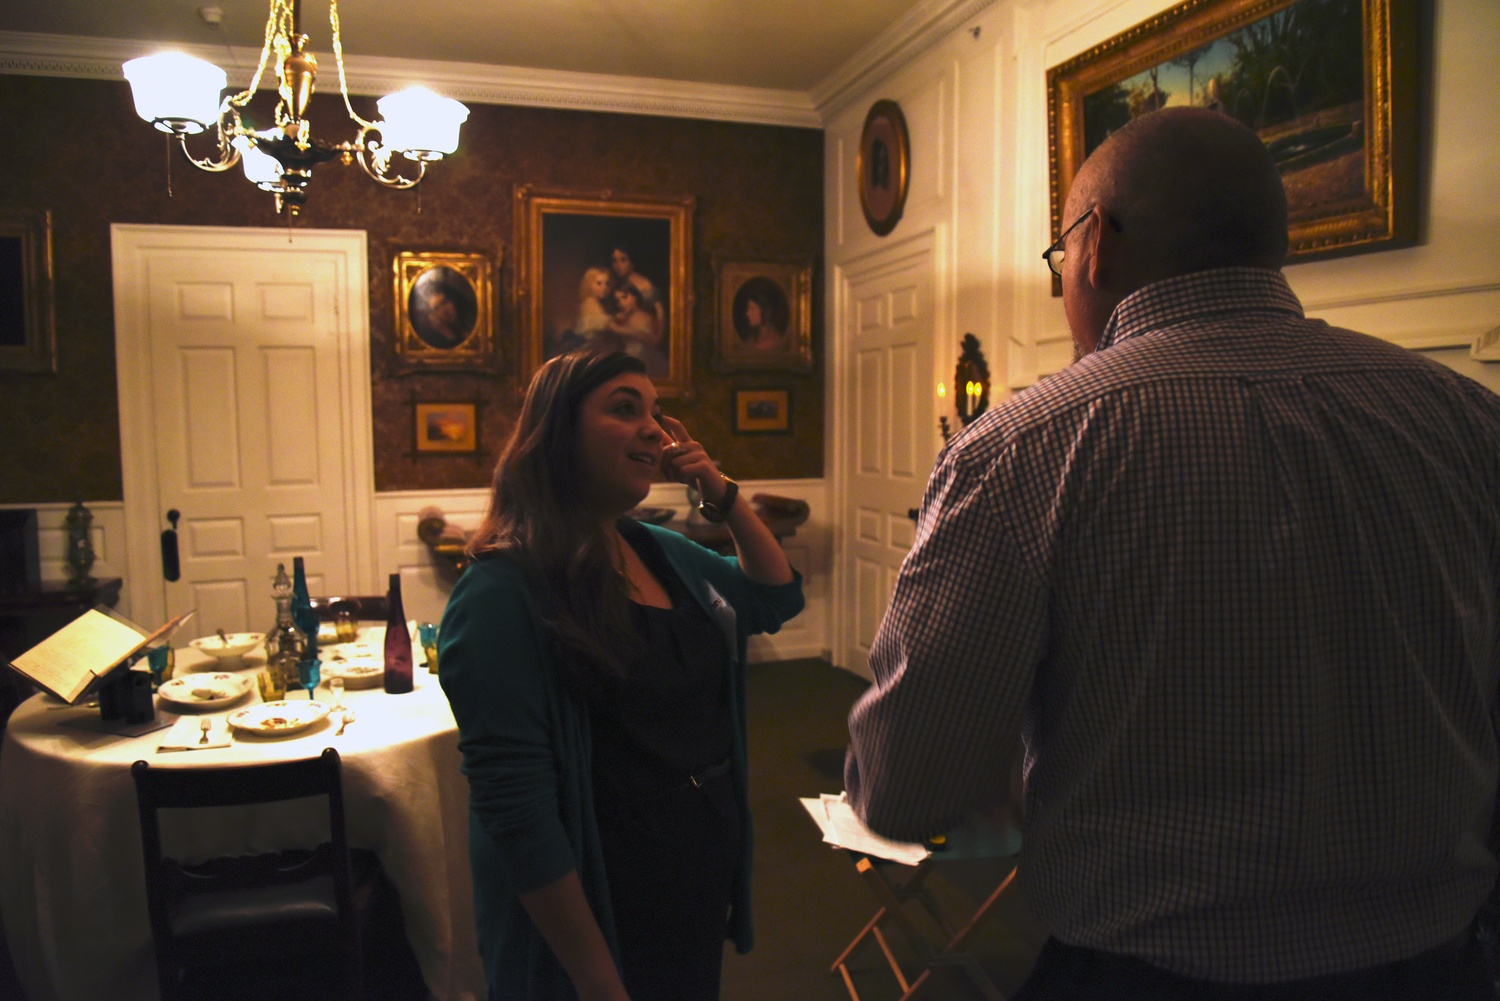 Marissa Cheifetz, a member of the Longfellow holiday open house's staff, describes the Longfellows' holiday menu to a visitor at Friday evening's open house.